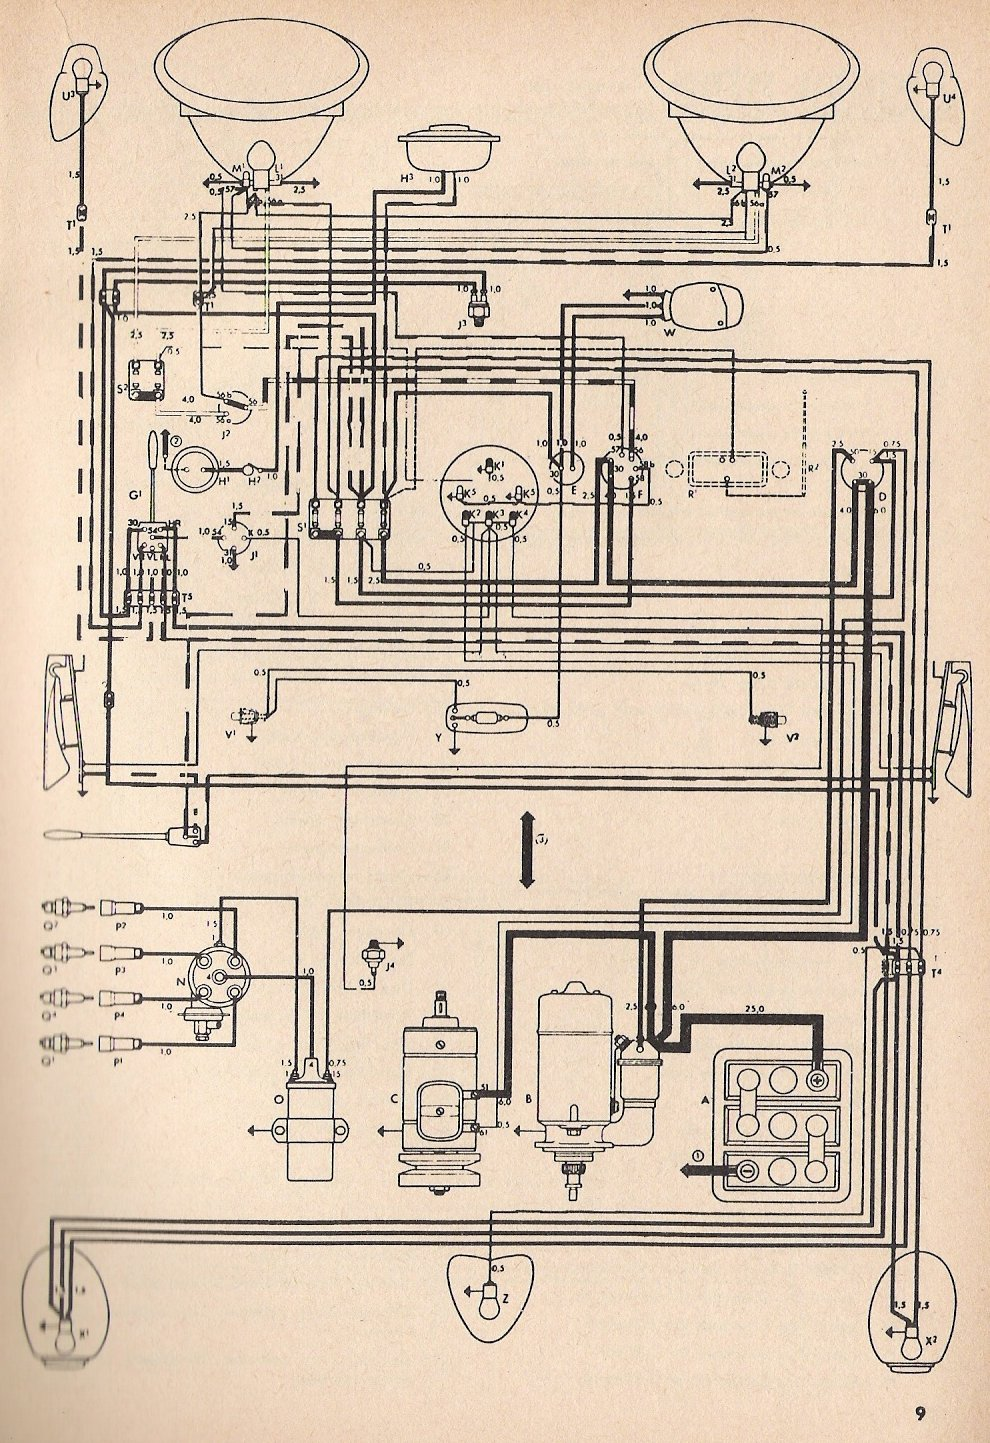 hight resolution of 1963 vw bug wiring diagram